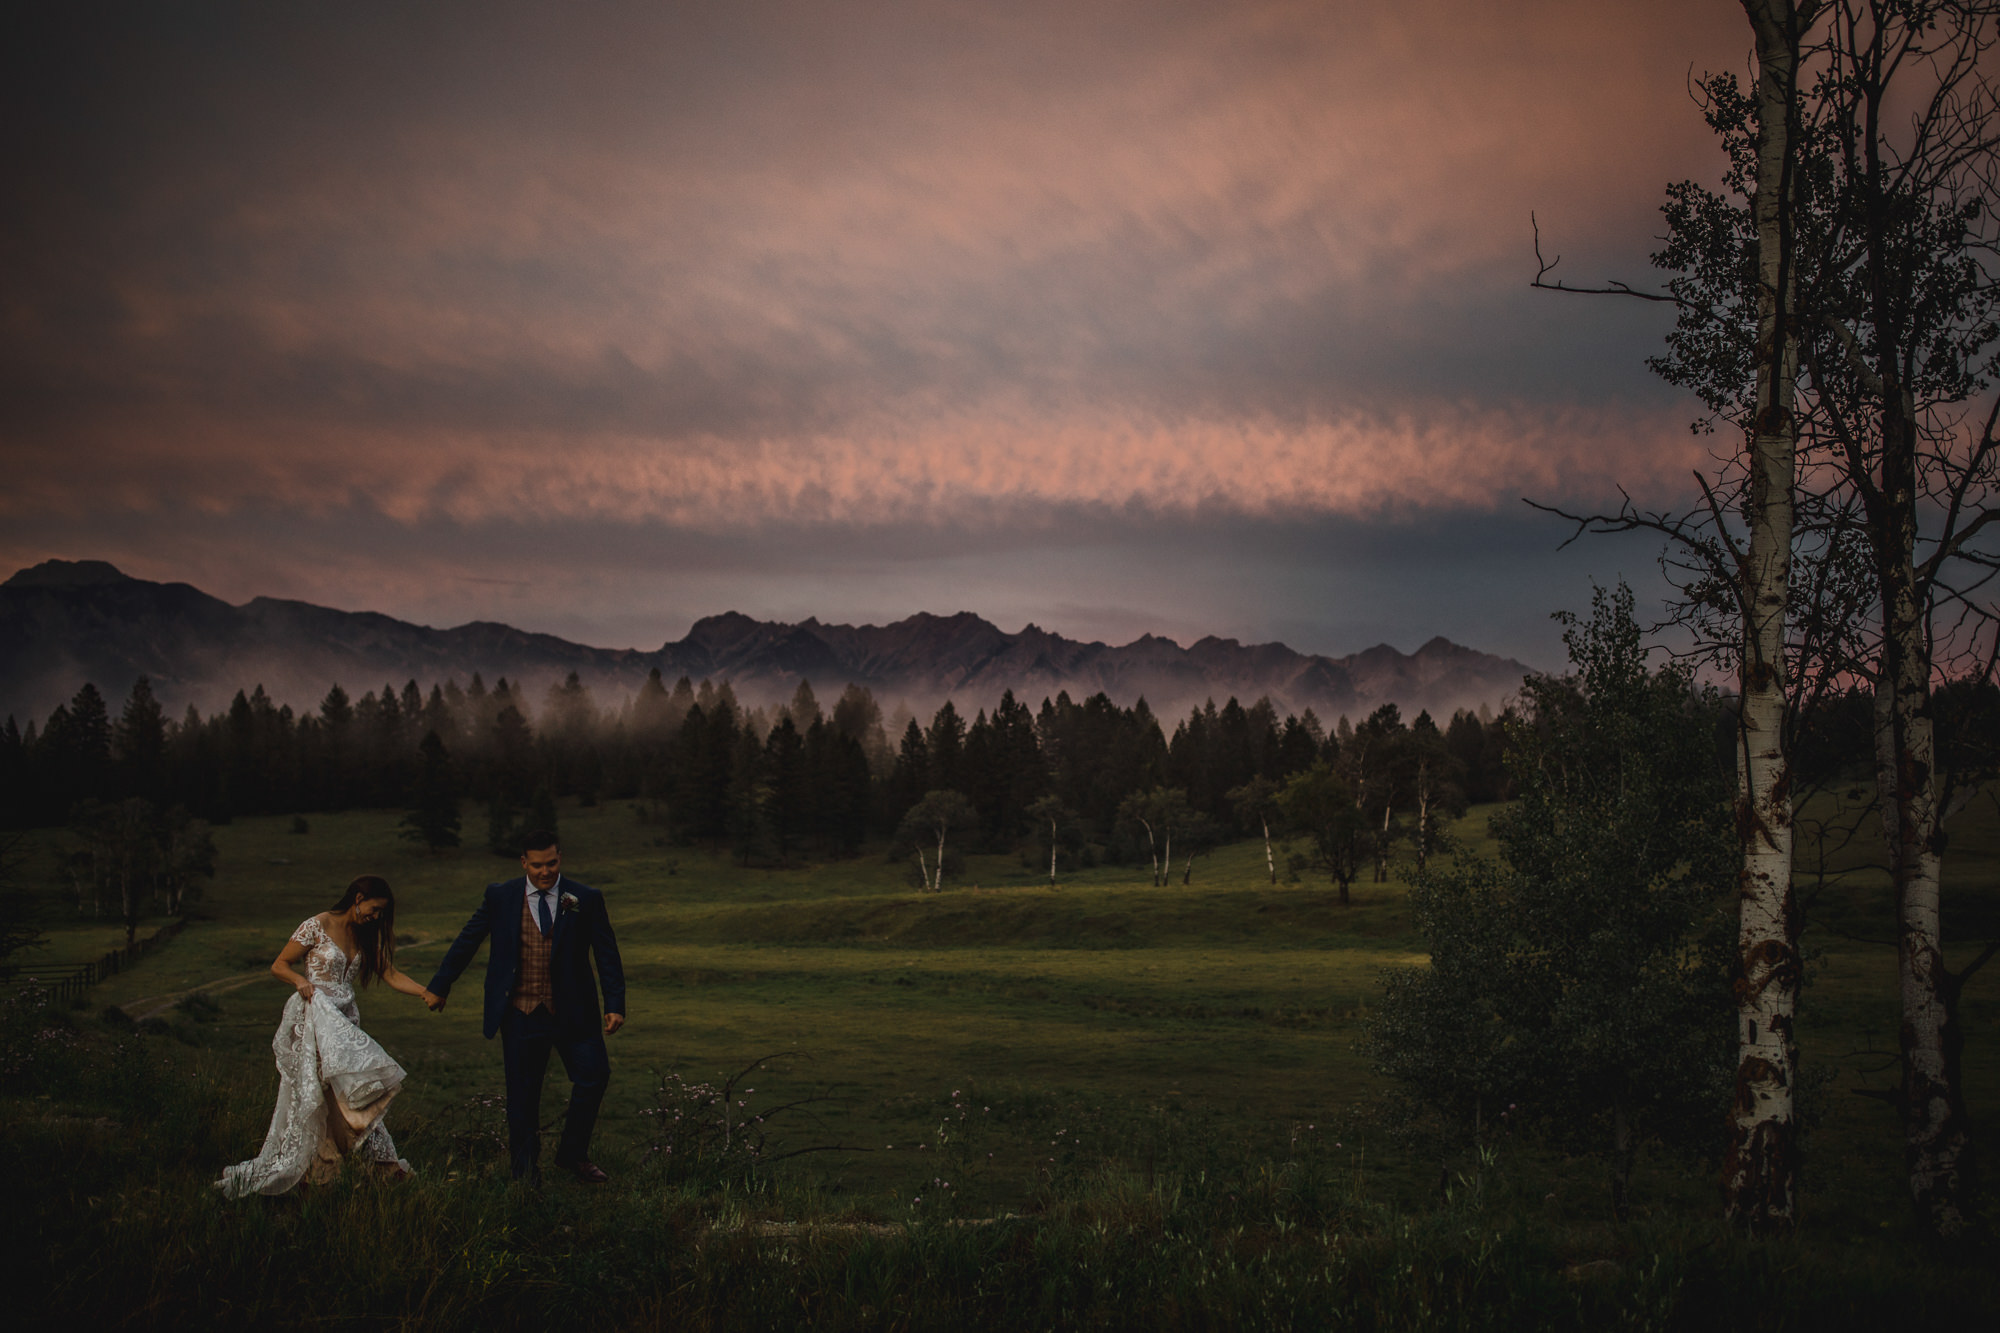 watercolor-clouds-behind-couple-in-field-canada-worlds-best-wedding-photos-gabe-mcclintock-calgary-wedding-photographer-00064